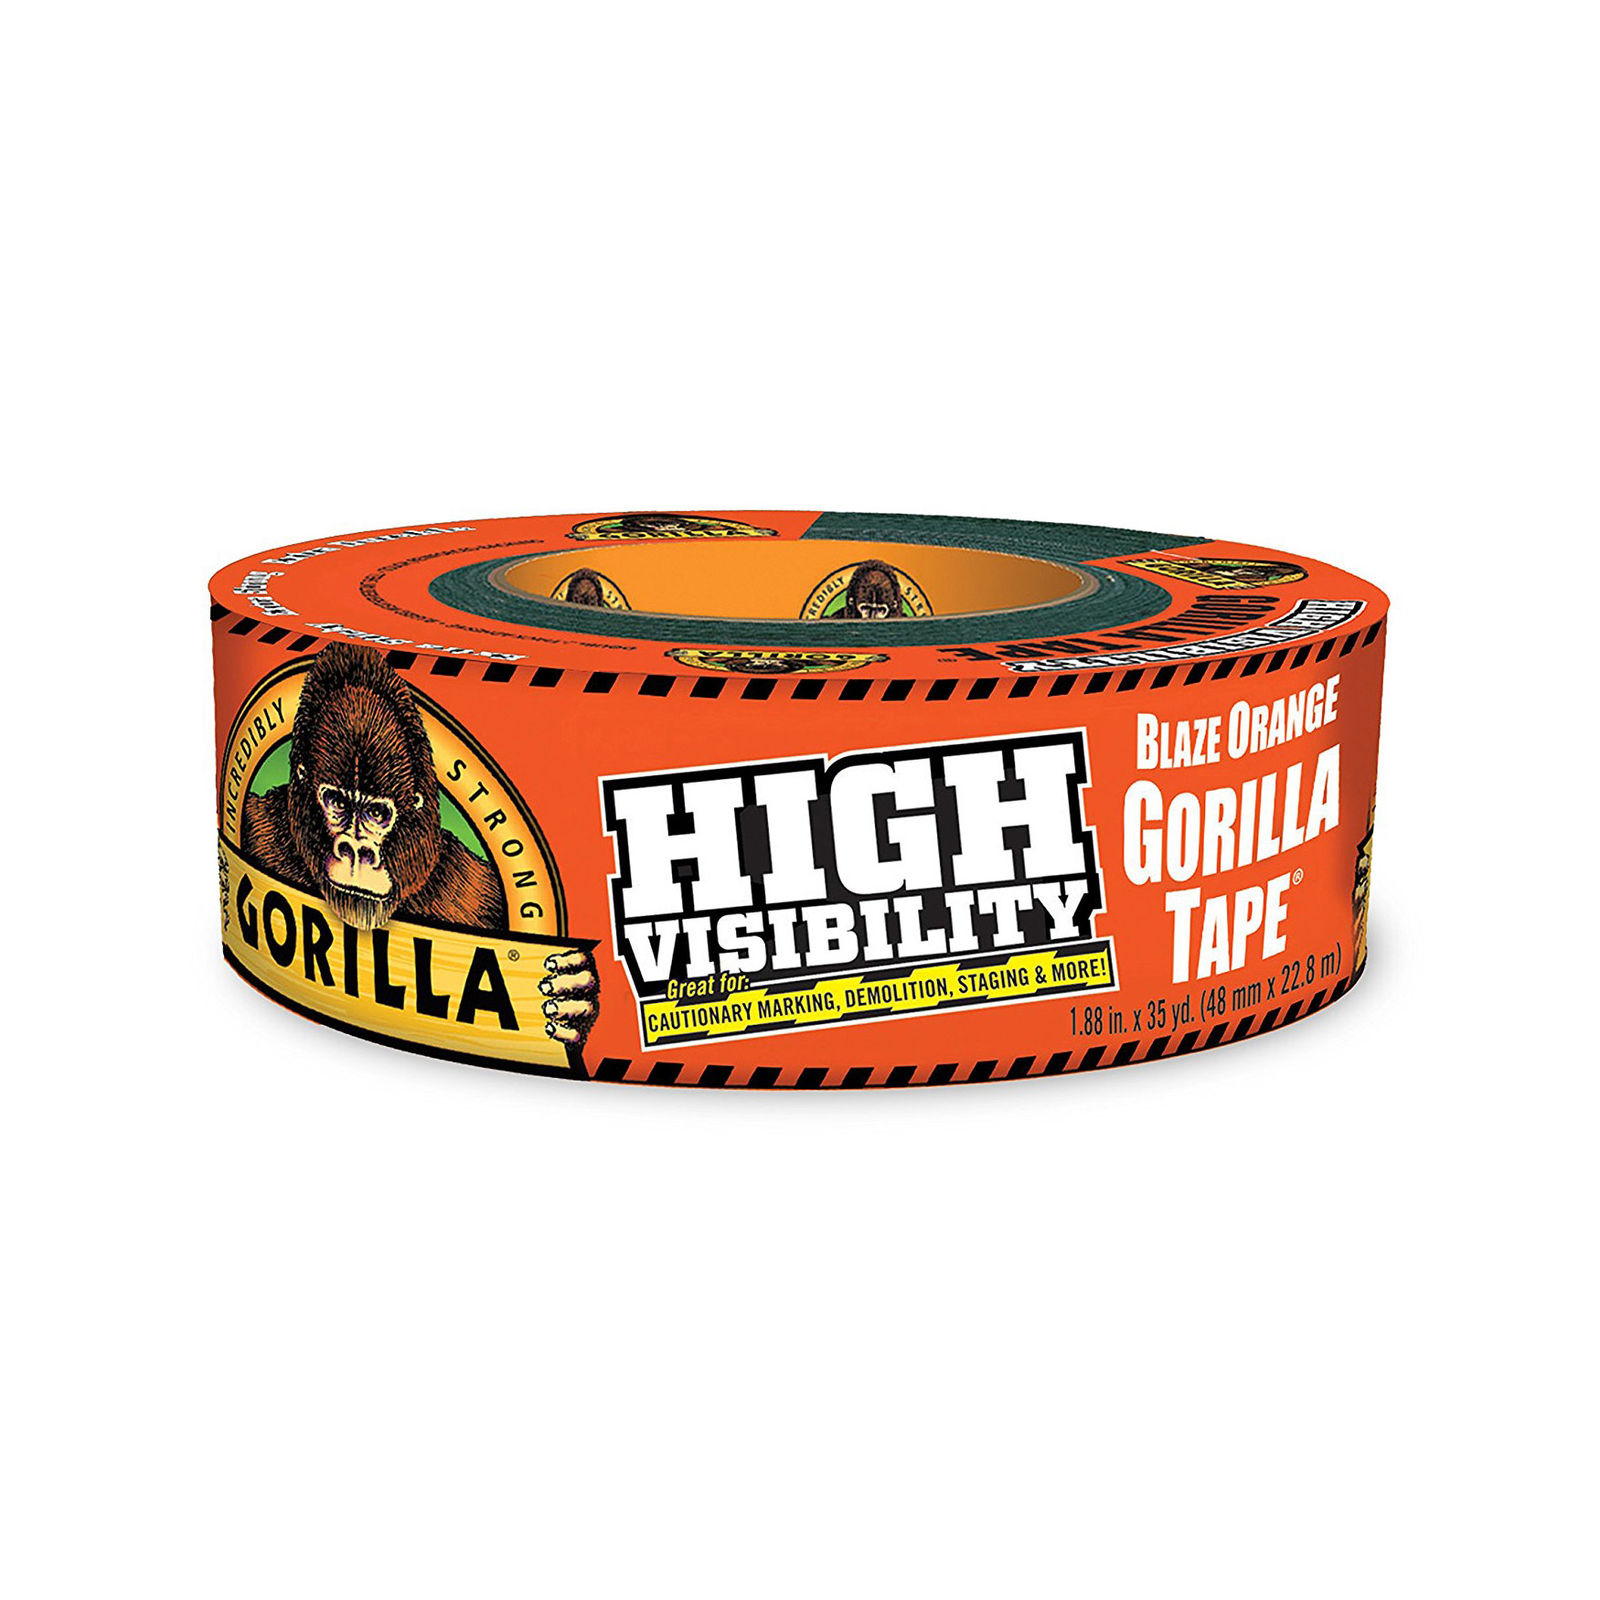 "Gorilla 6004002 Tape, High Visibility Duct Tape, 1.88"" x 35 yd, Blaze Orange"